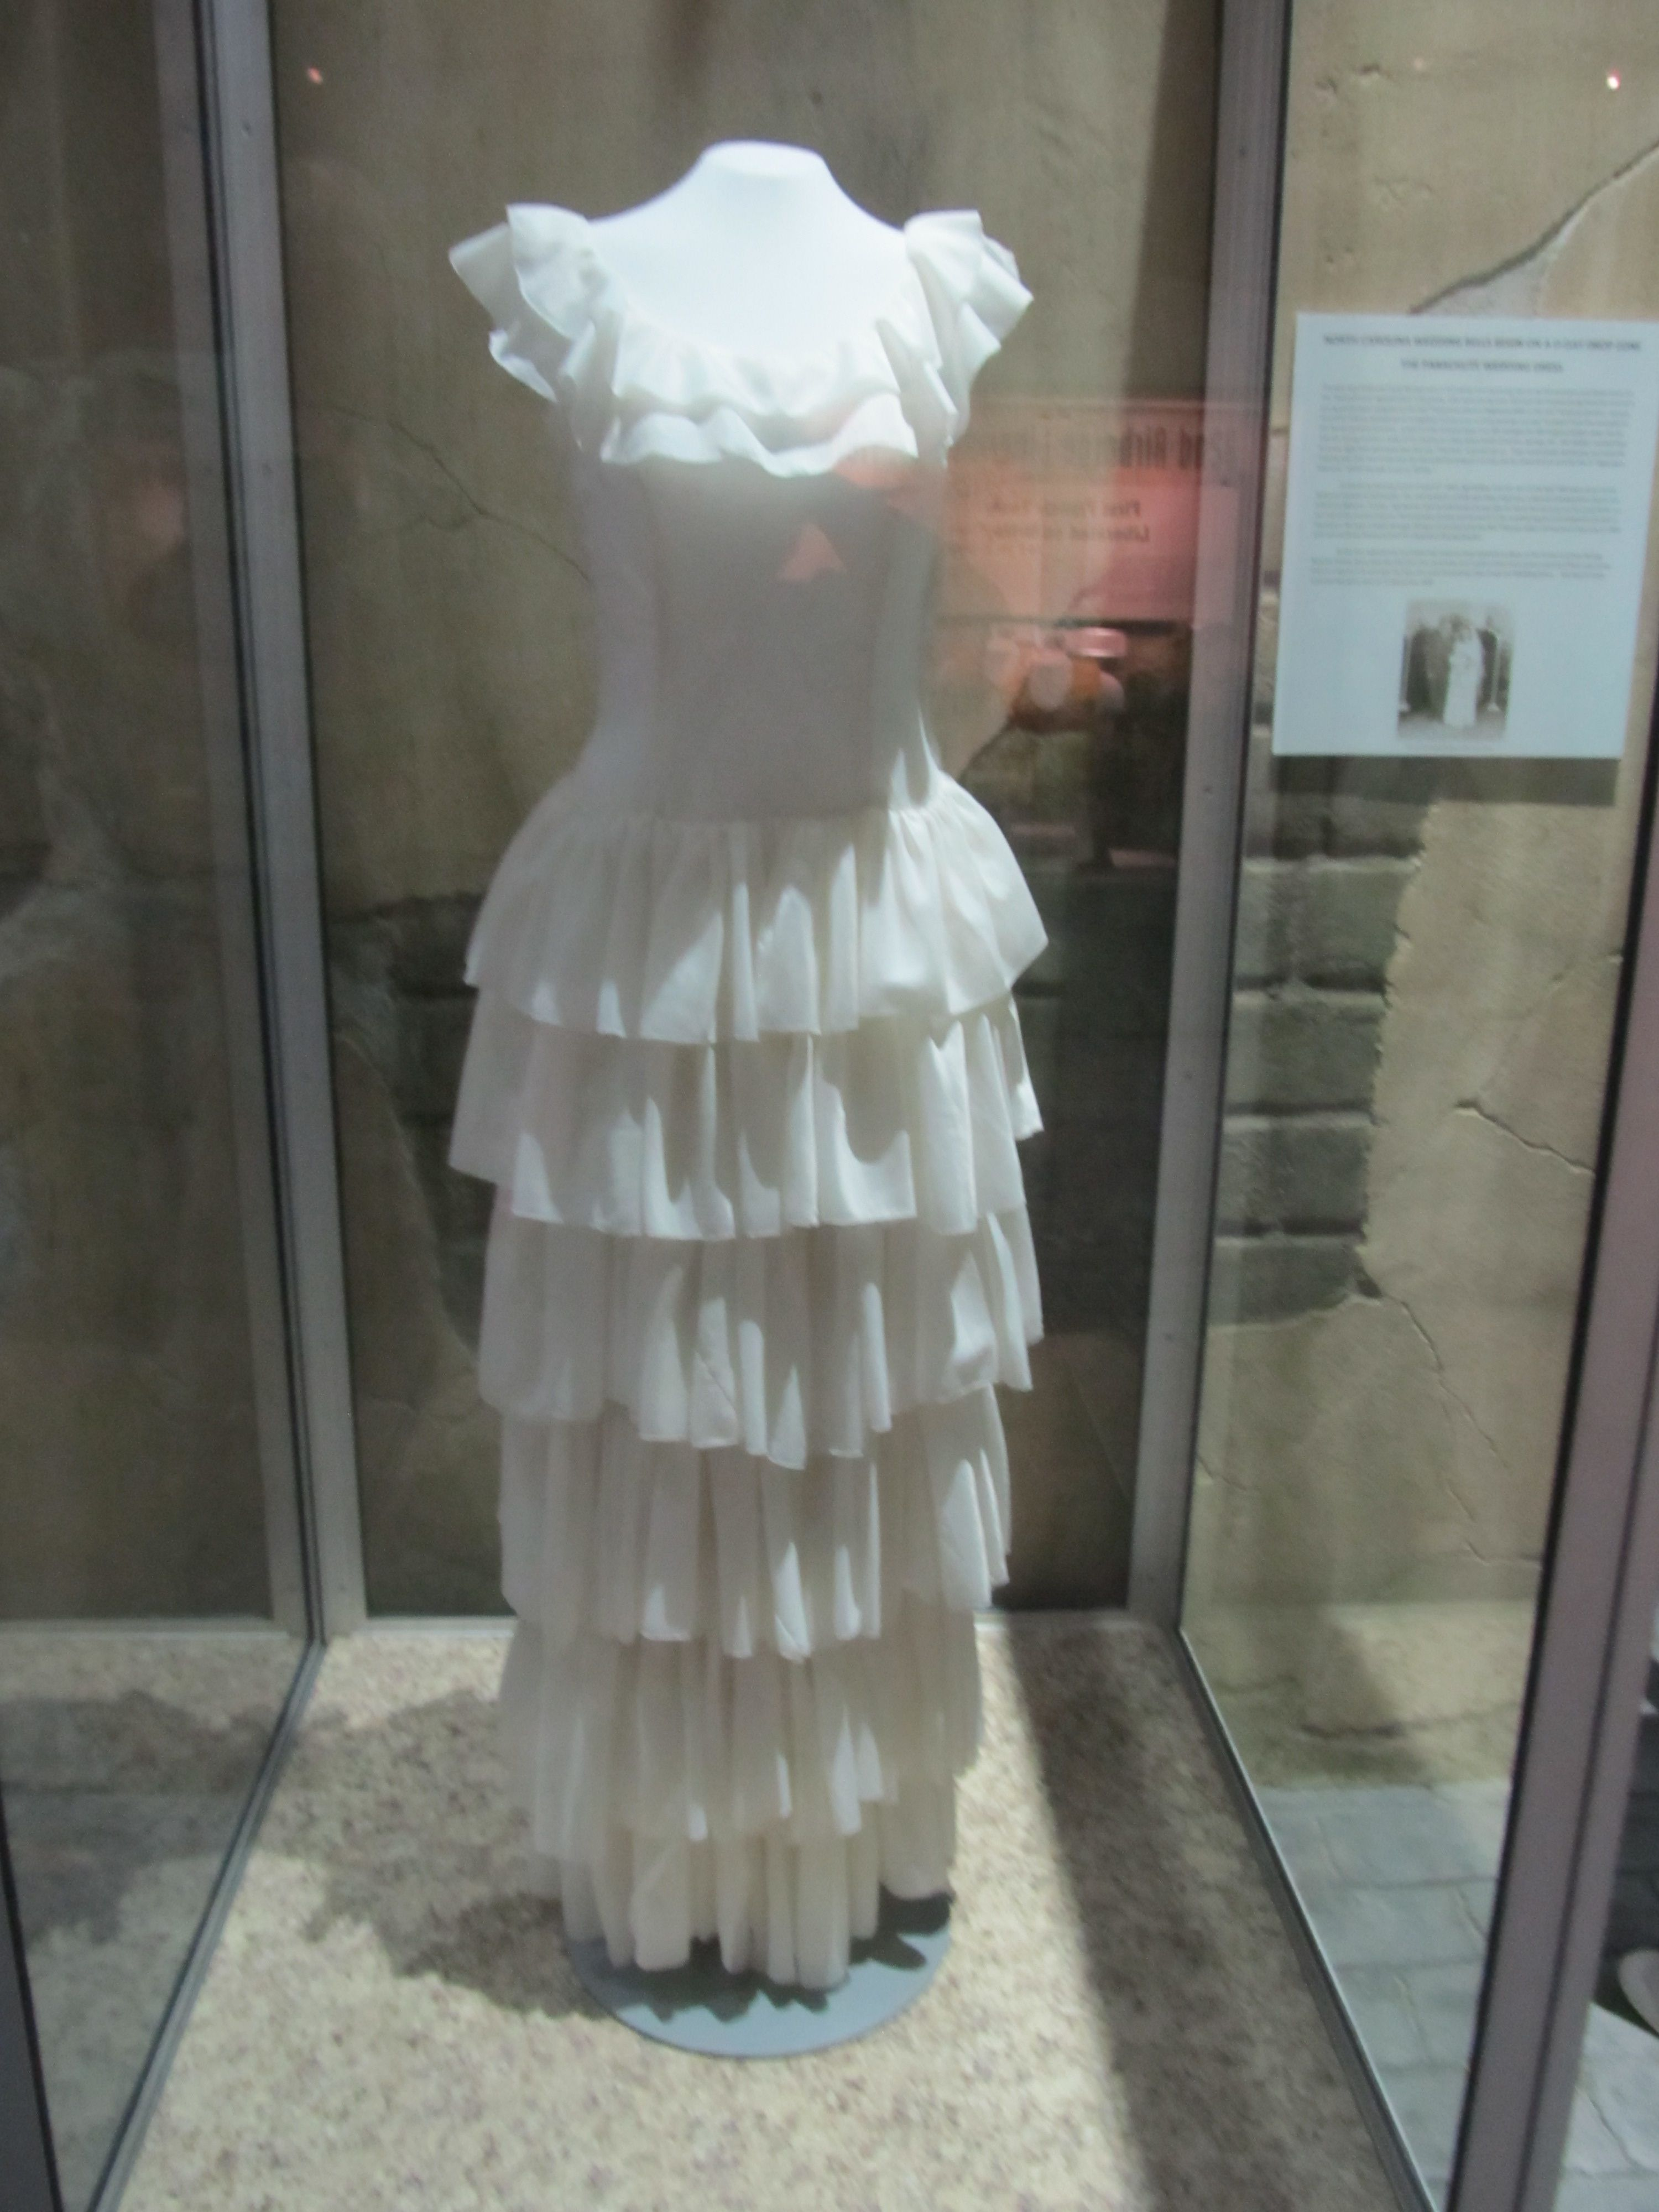 Dress made from a used parachute on display at Airborne and Special Operations Museum in Fayetteville, NC.